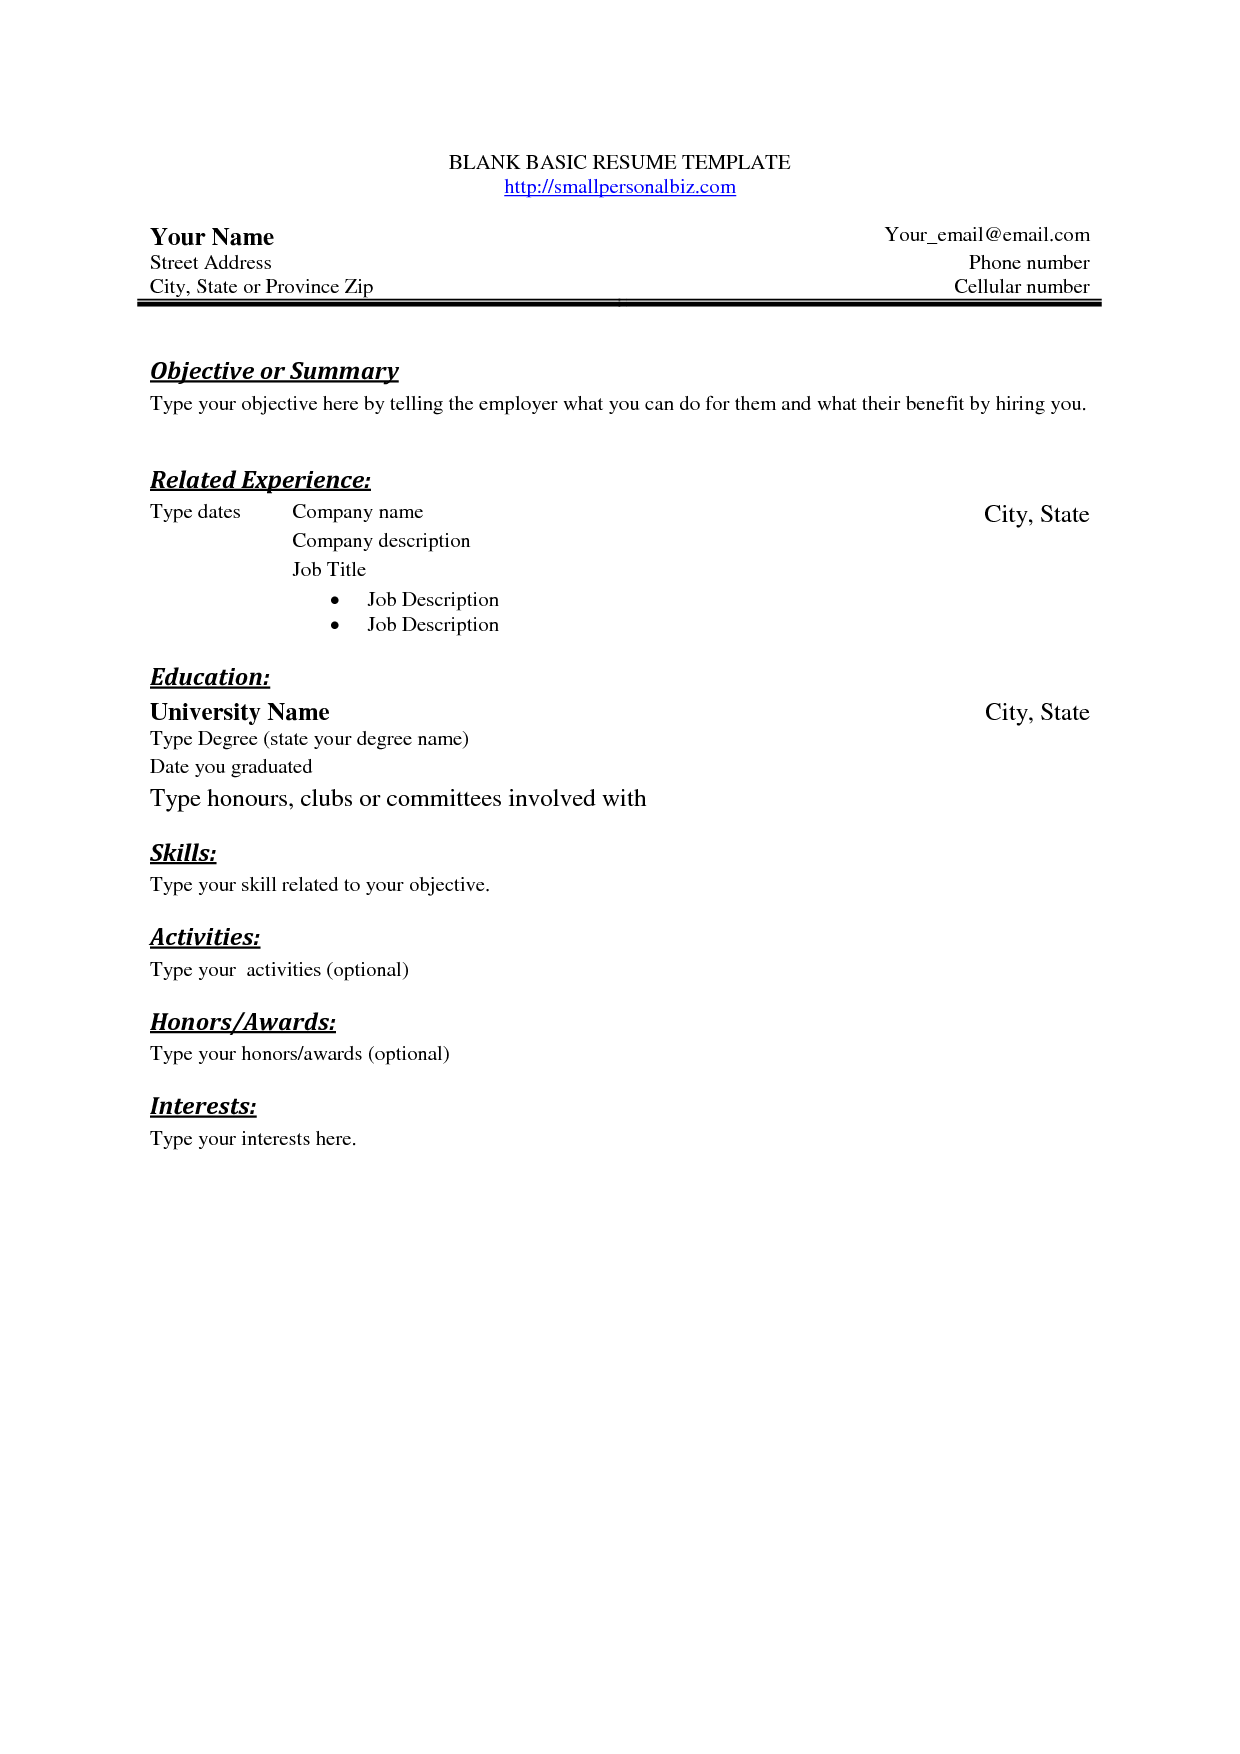 Simple Free Resume Template Stylist And Luxury Simple Resume Layout 10 Free Basic Blank Resume